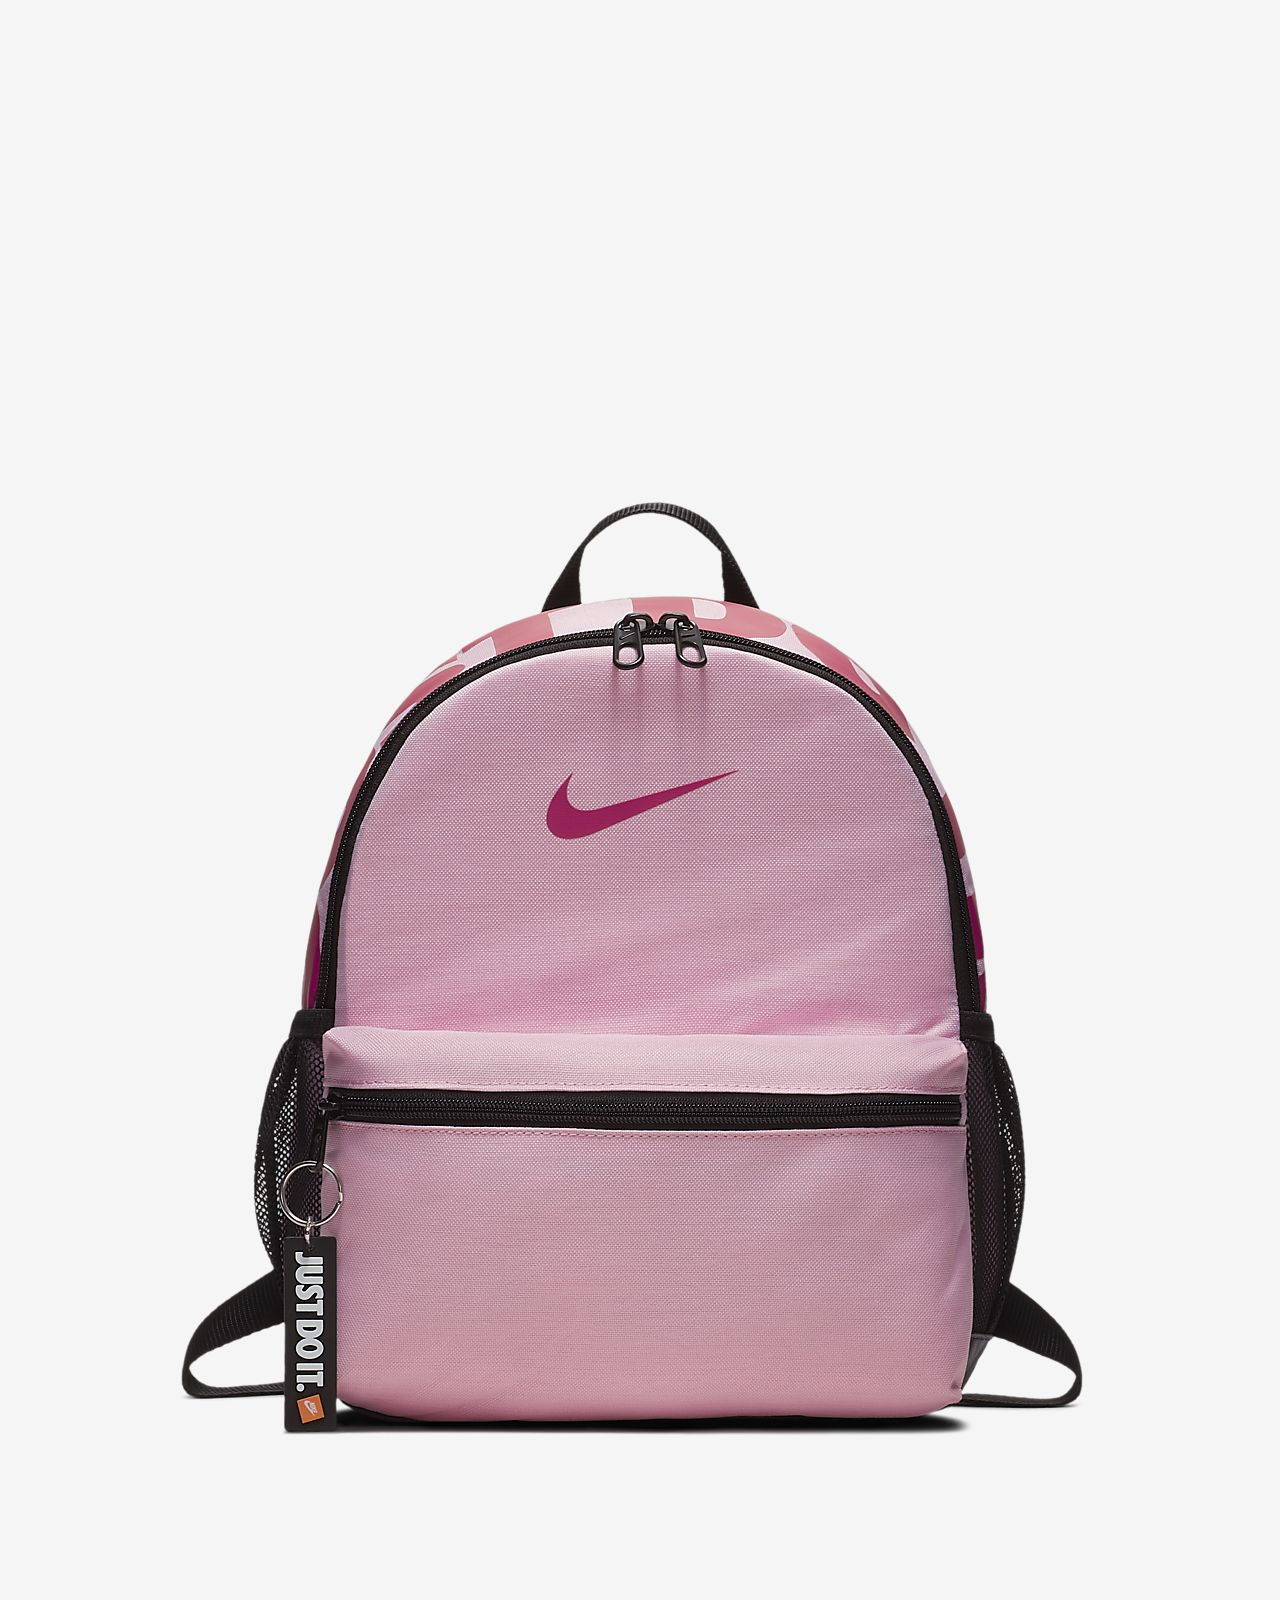 a6eeeaed8cd78d Nike Air Jordan Mini Backpack